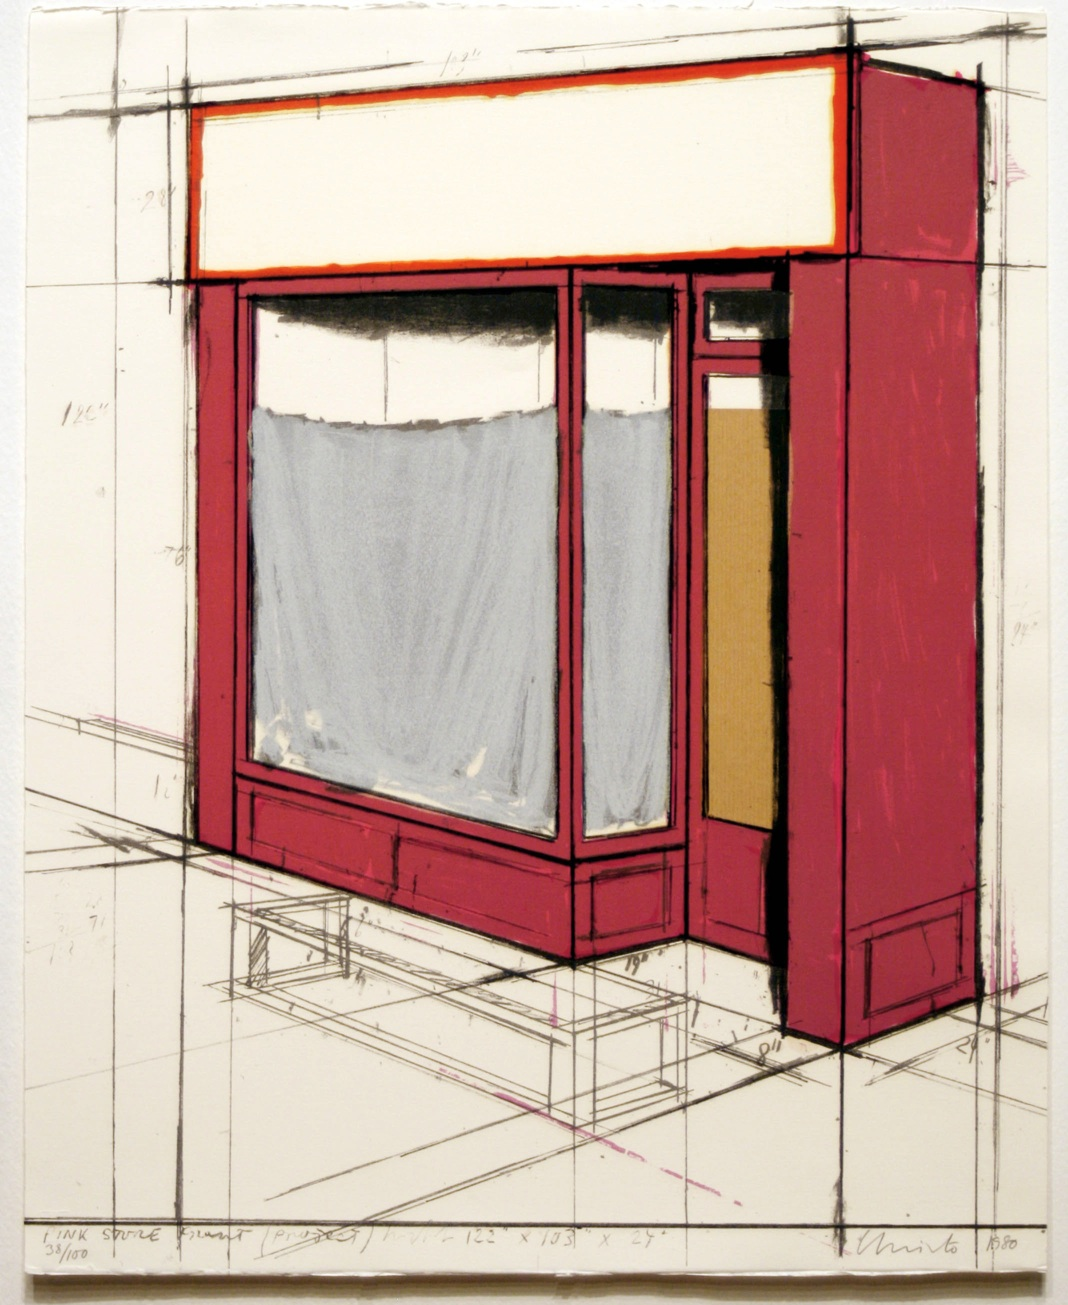 alt Pink Store Front, Project from Marginalia: Hommage to Shimizu, 1980